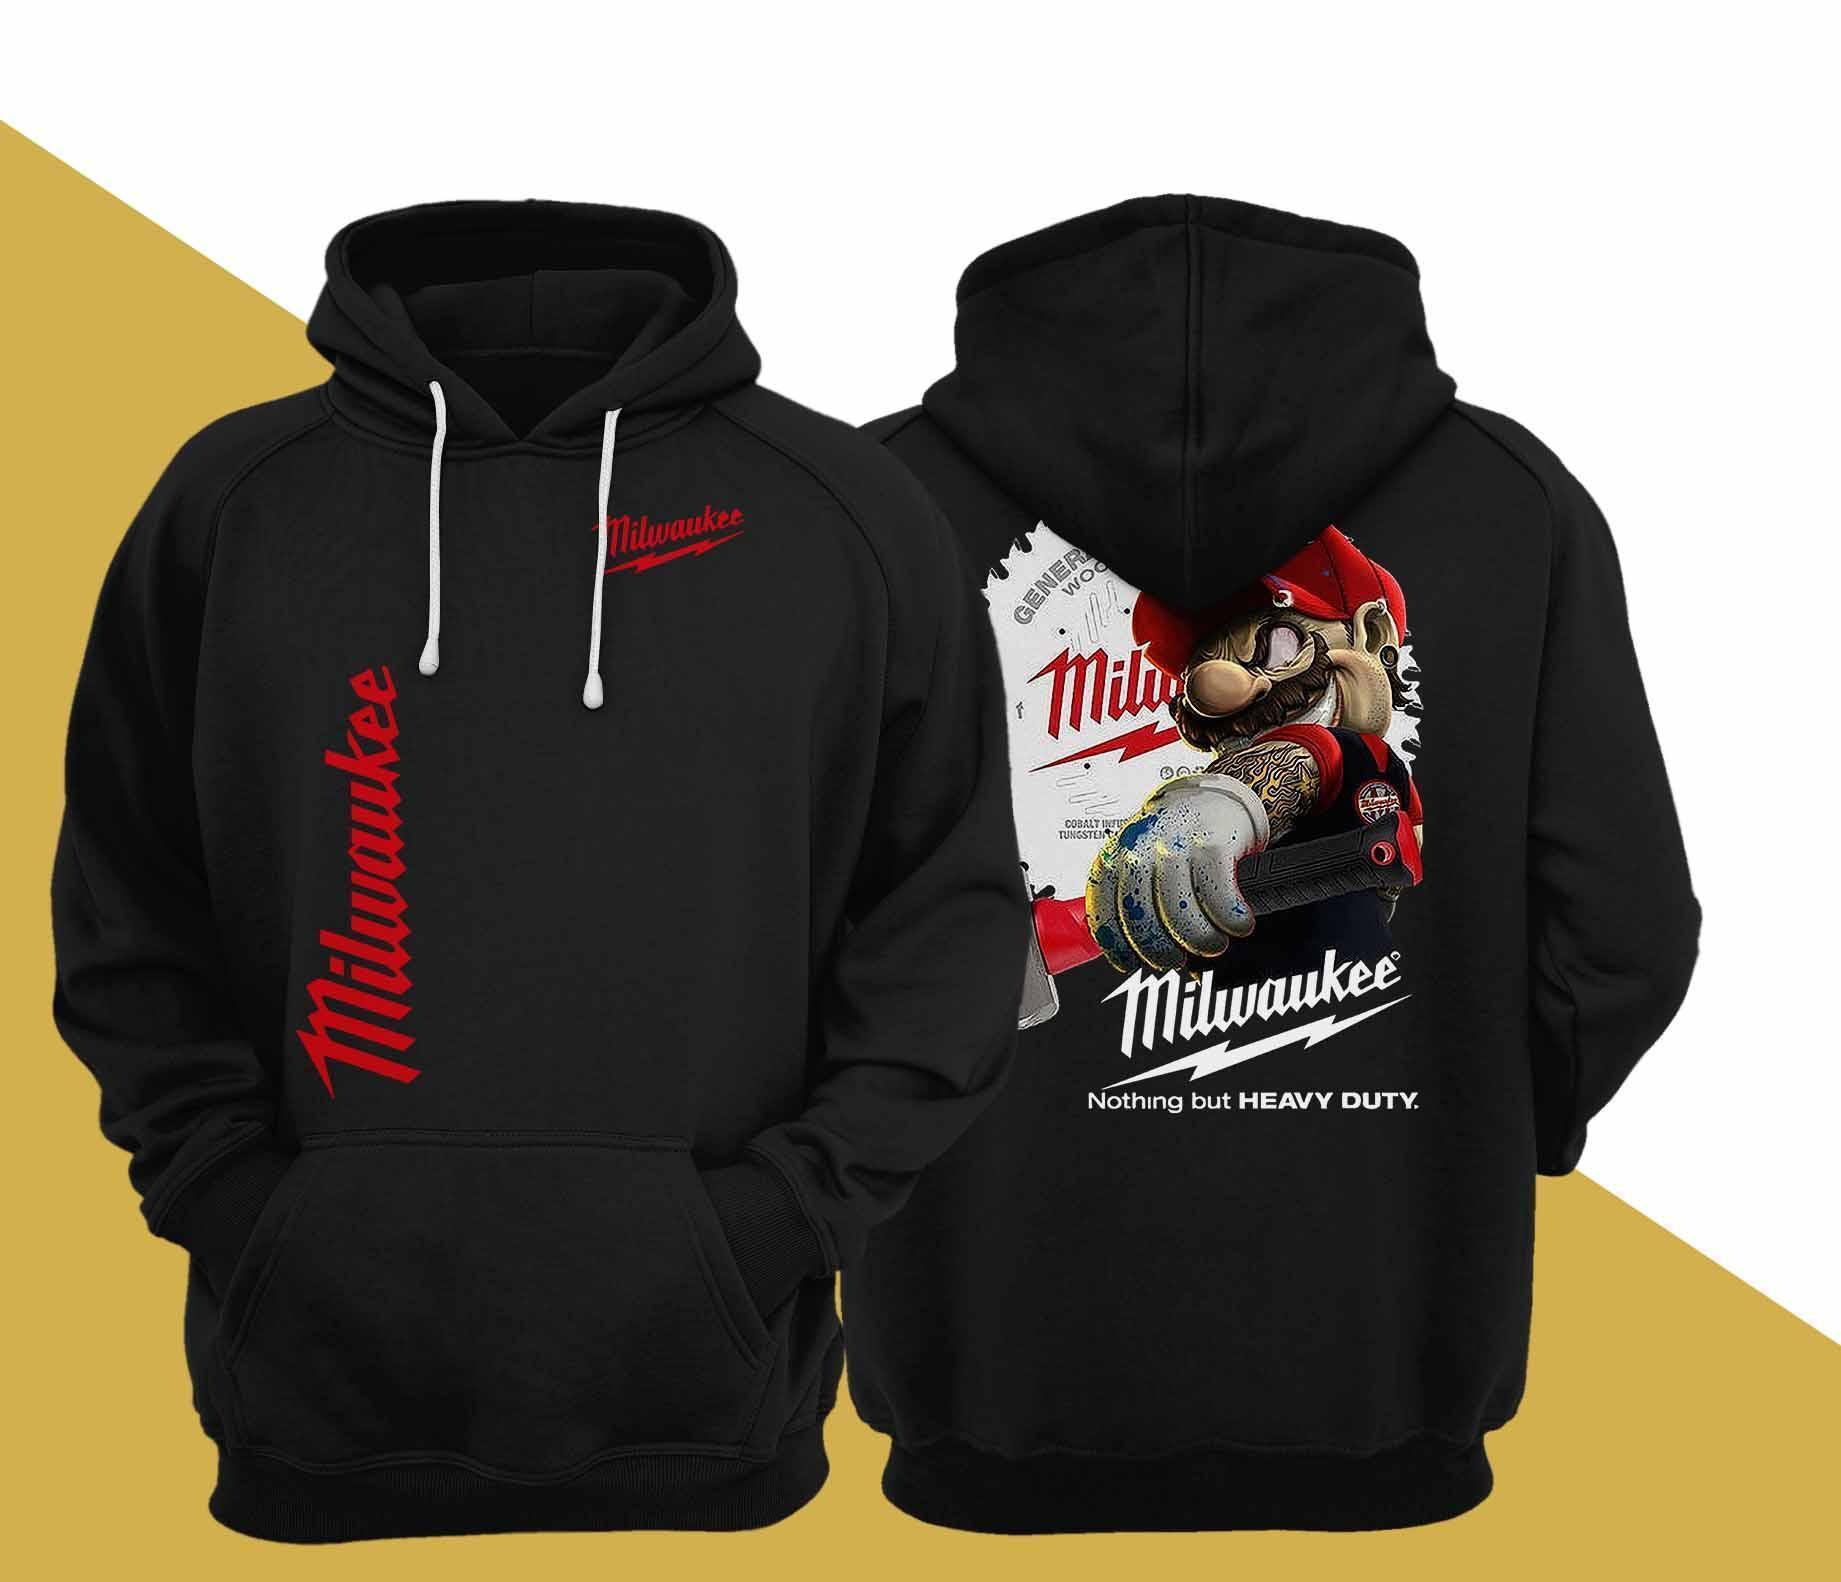 Mario Milwaukee Nothing But Heavy Duty Hoodie